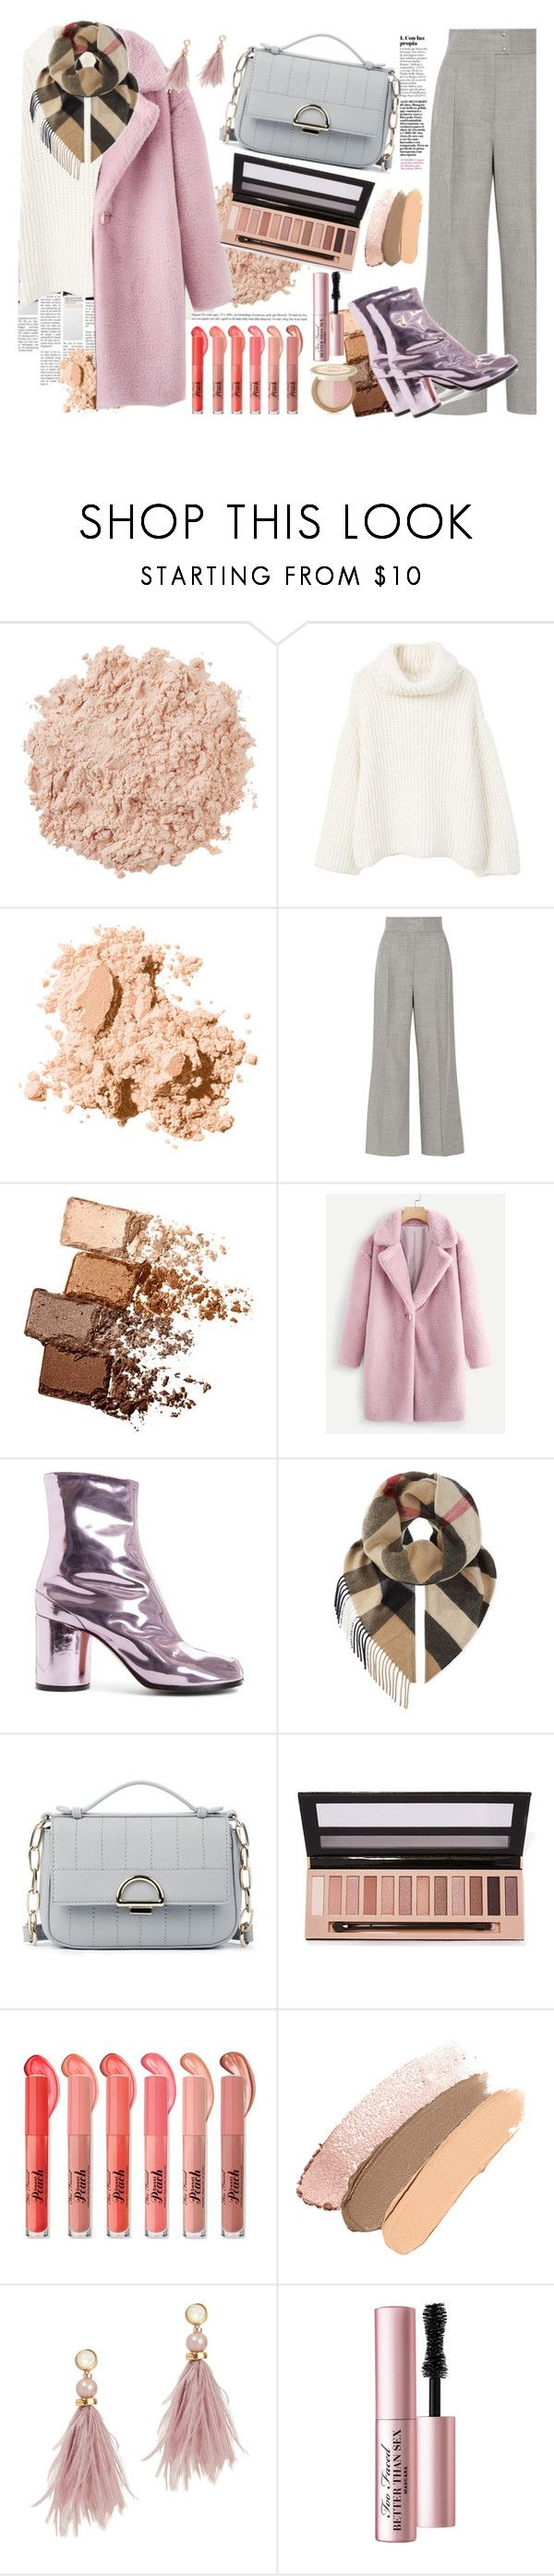 """Chic in Winter"" by aletraghetti on Polyvore featuring moda, La Mer, MANGO, Bobbi Brown Cosmetics, Barbara Casasola, Maybelline, Maison Margiela, Burberry, Sole Society y L.A. Girl"